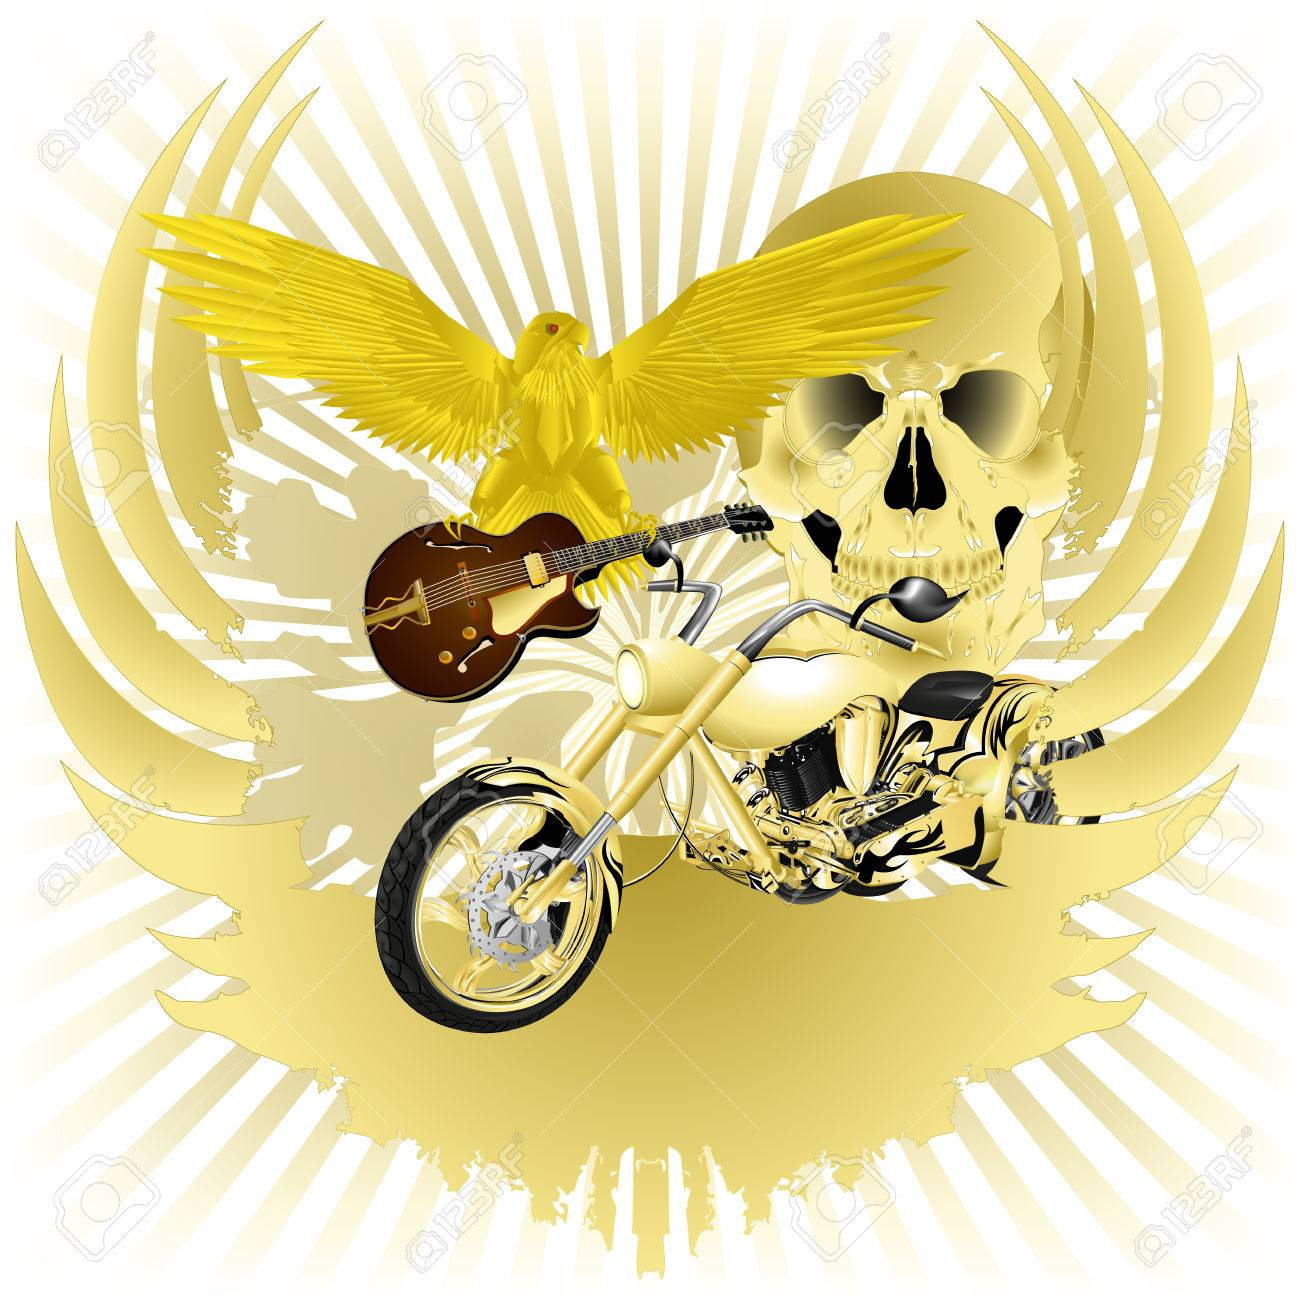 Rock n roll background images - Rock N Roll Vector Illustration Background And Golden Chopper Stock Vector 35948677